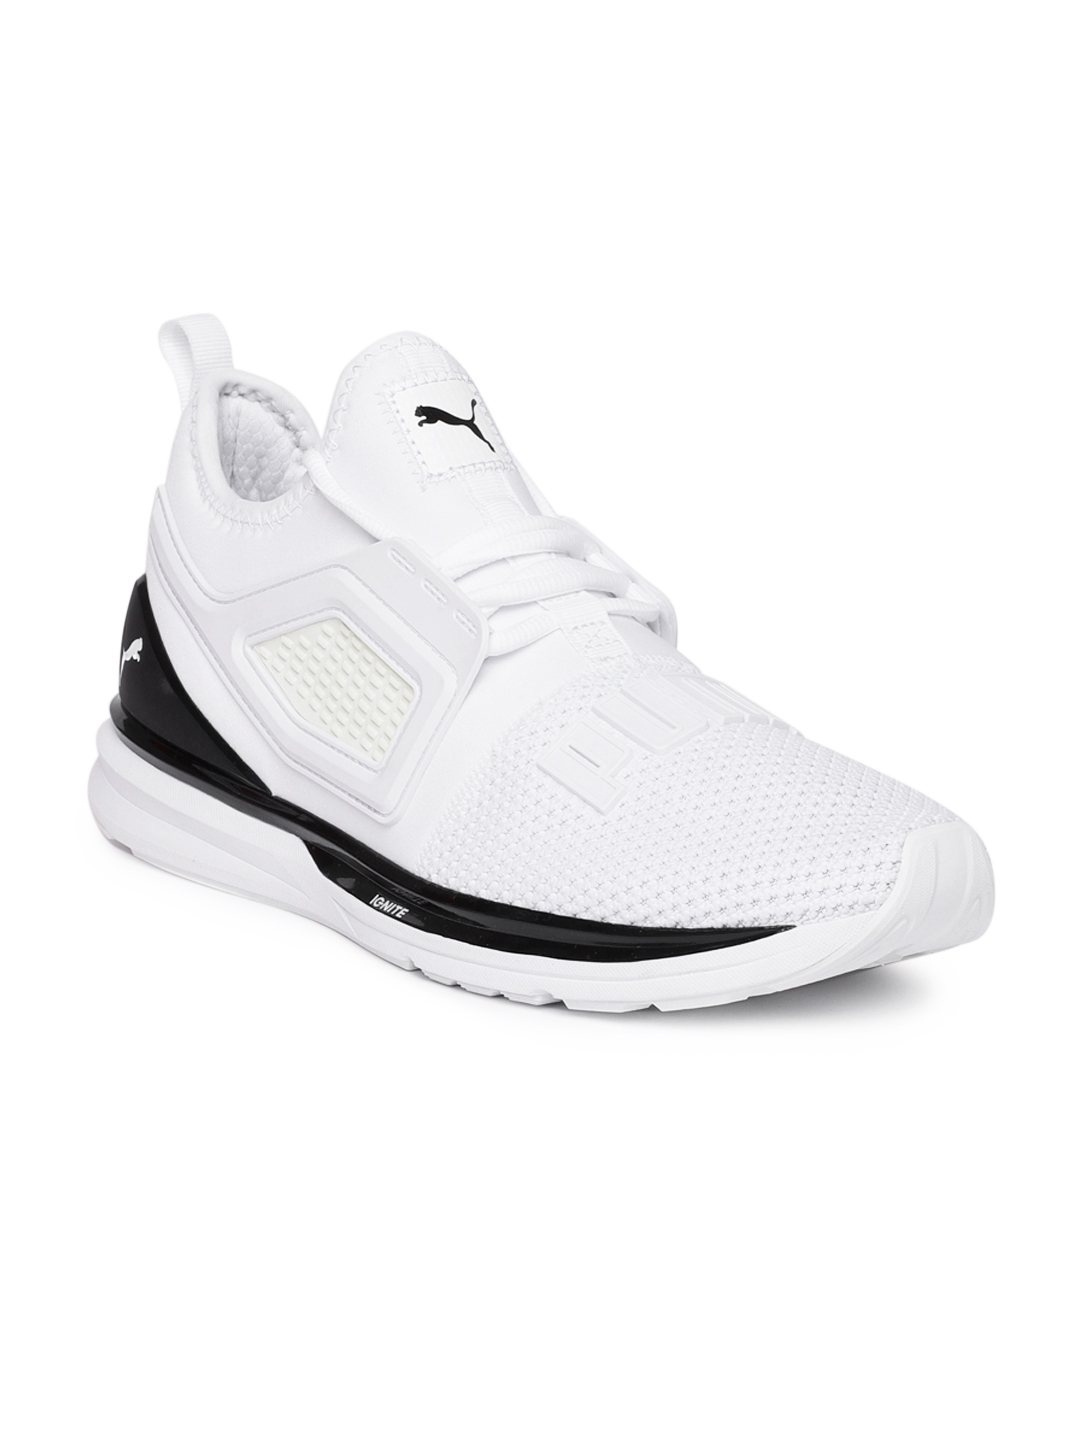 Puma Running Limitless Sports 2 Men Buy White Ignite Shoes qSUzMVp